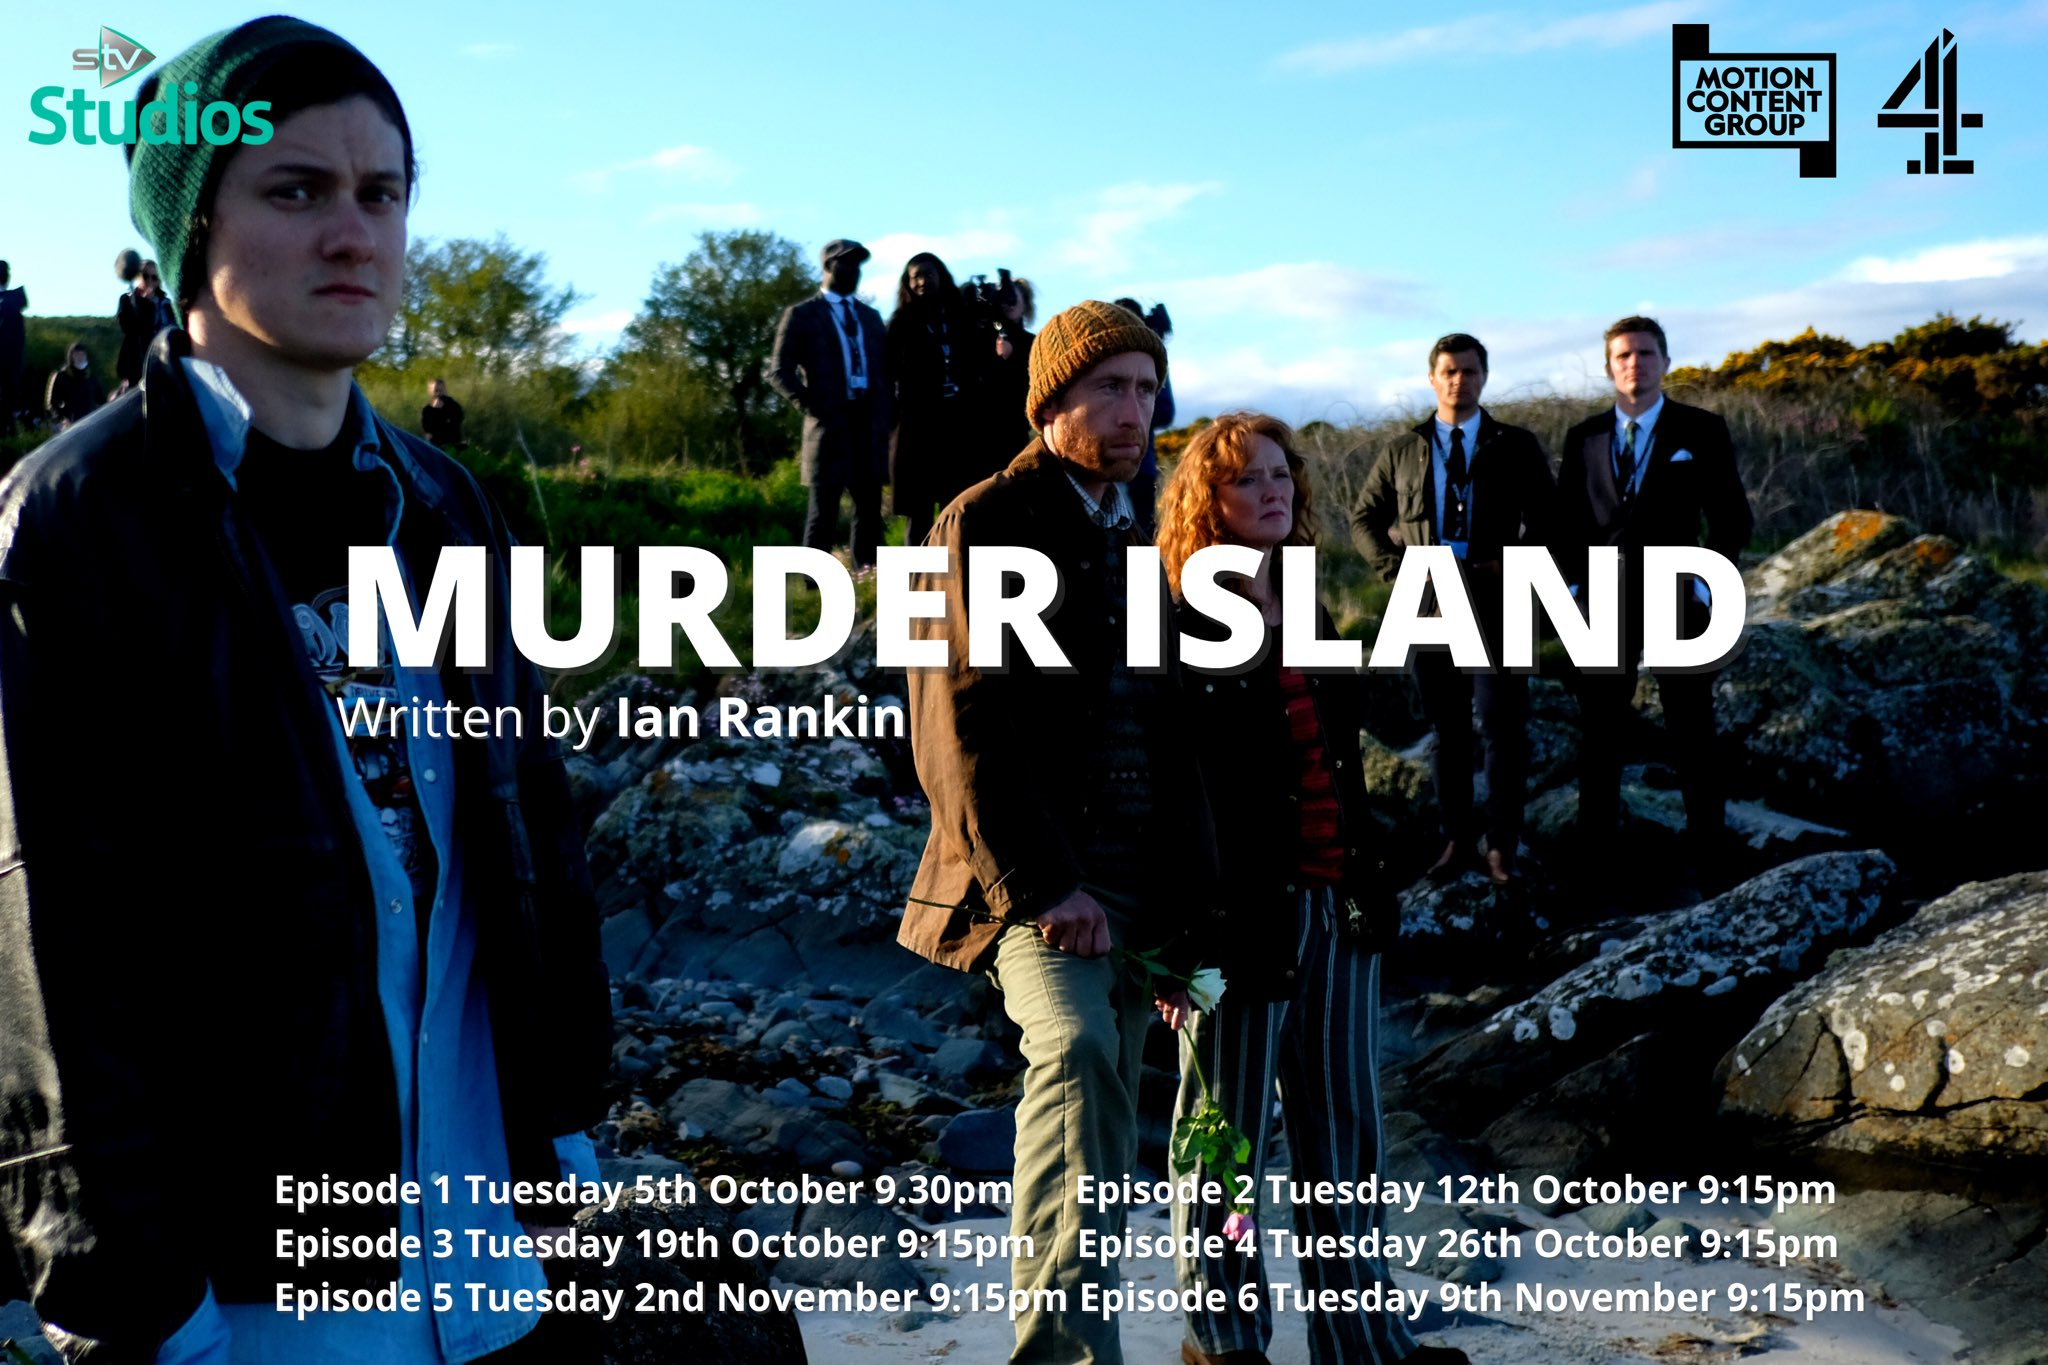 """Isle of Gigha Heritage Trust on Twitter: """"Less than 2 weeks until Gigha  appears on your screens… Murder Island airs Tuesday 5th October at 9.30pm  on Channel 4 😀 @Channel4 @STVStudios @Beathhigh"""